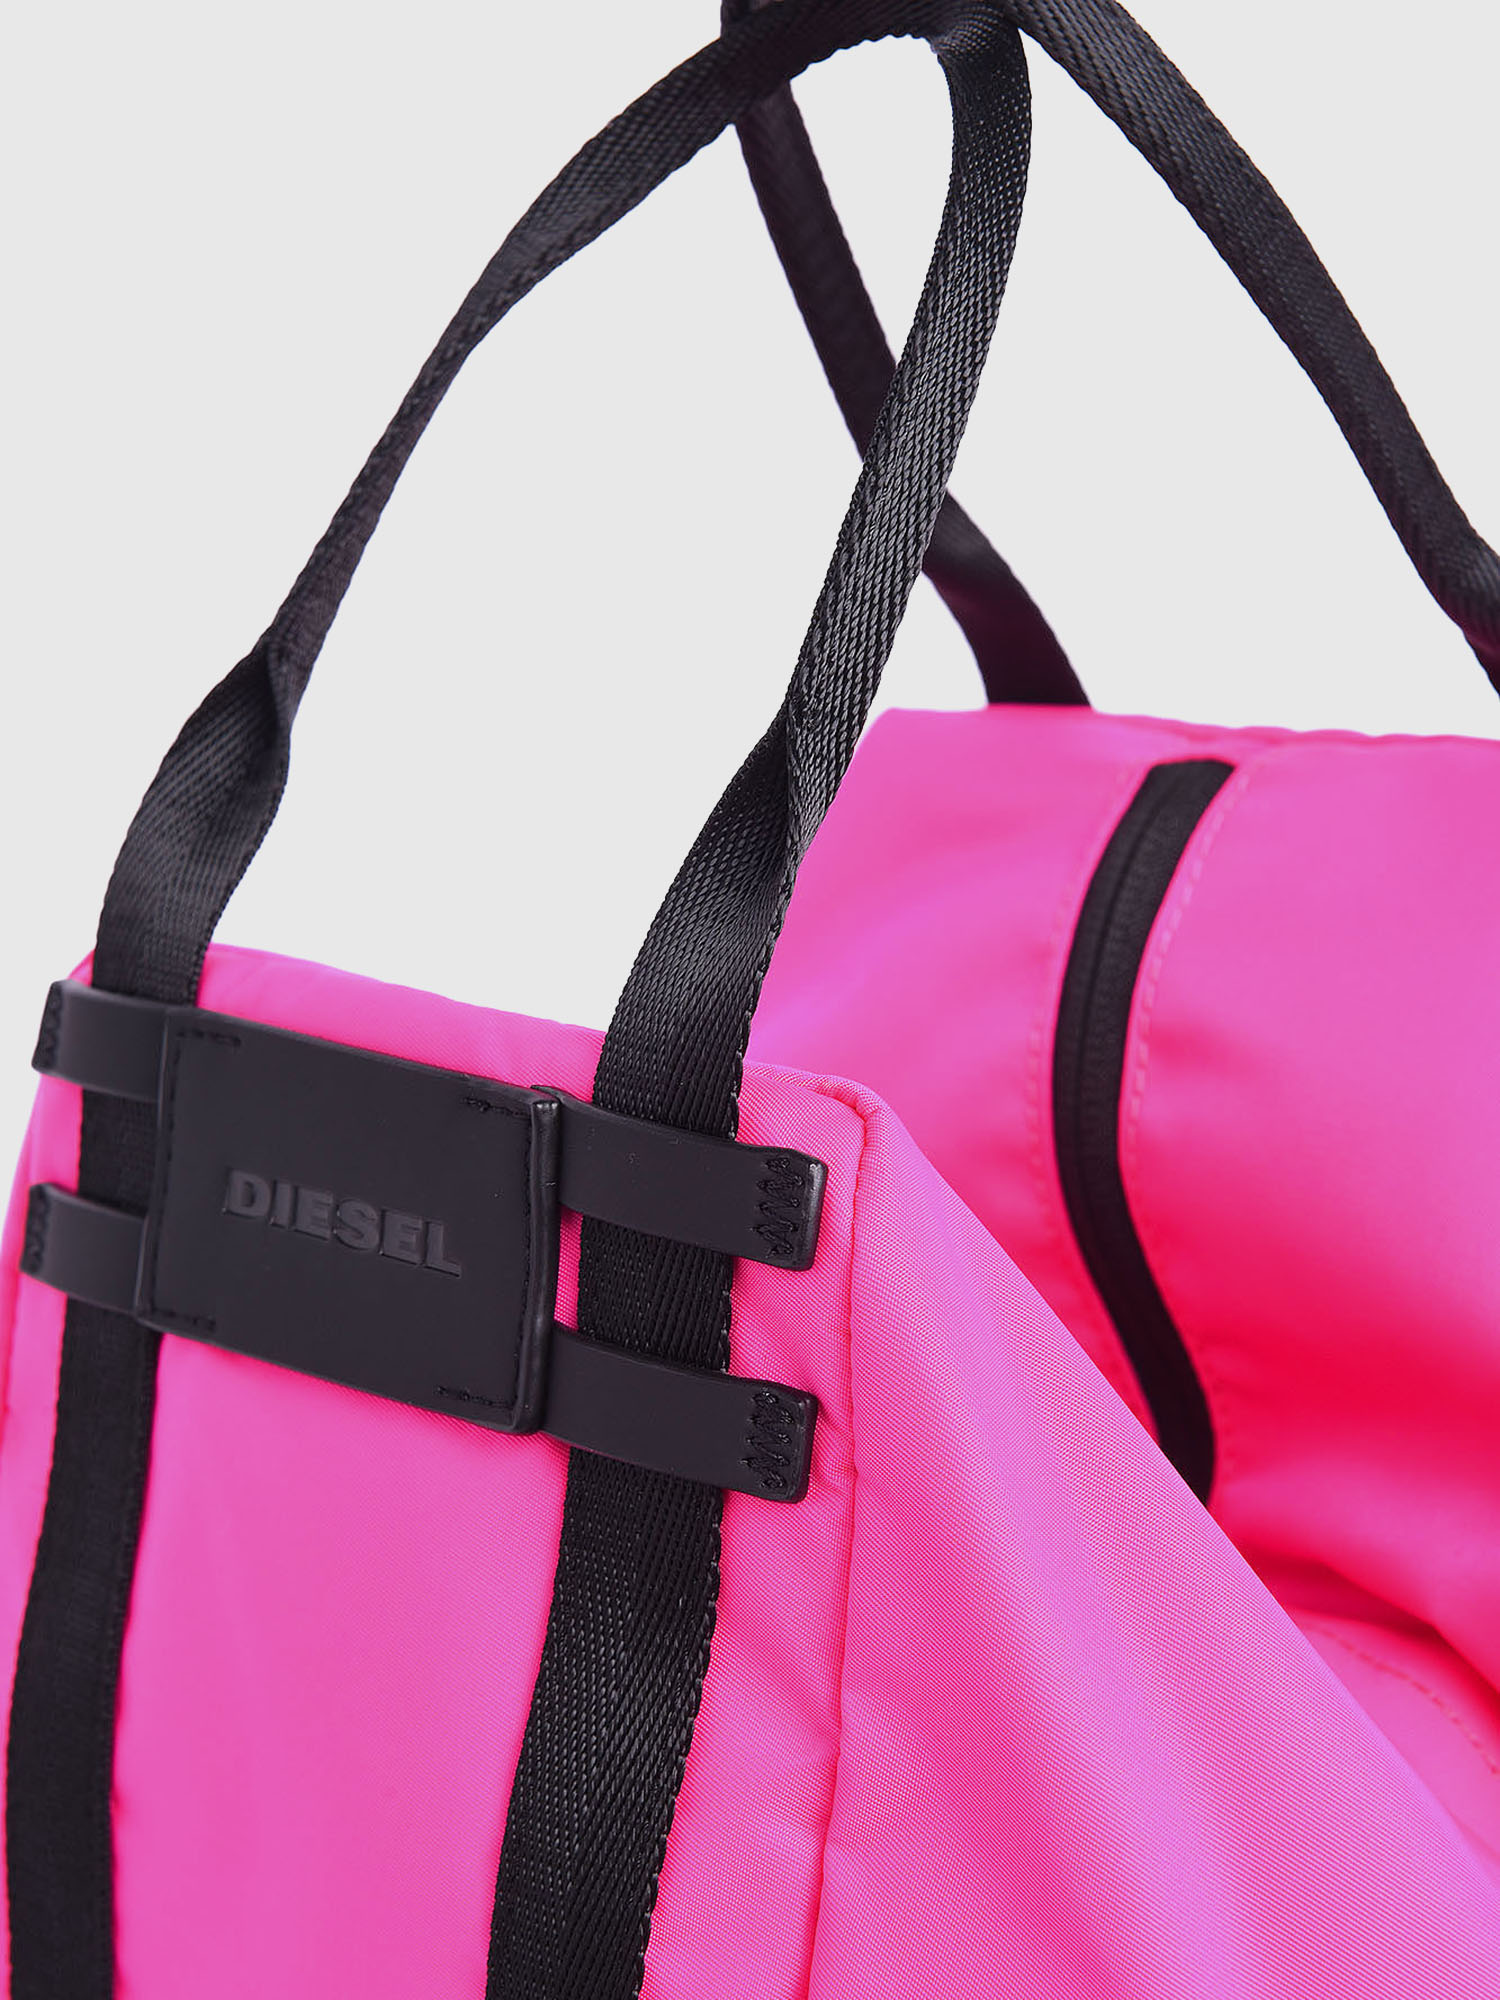 Diesel - CAGE SHOPPER XS,  - Bags - Image 2